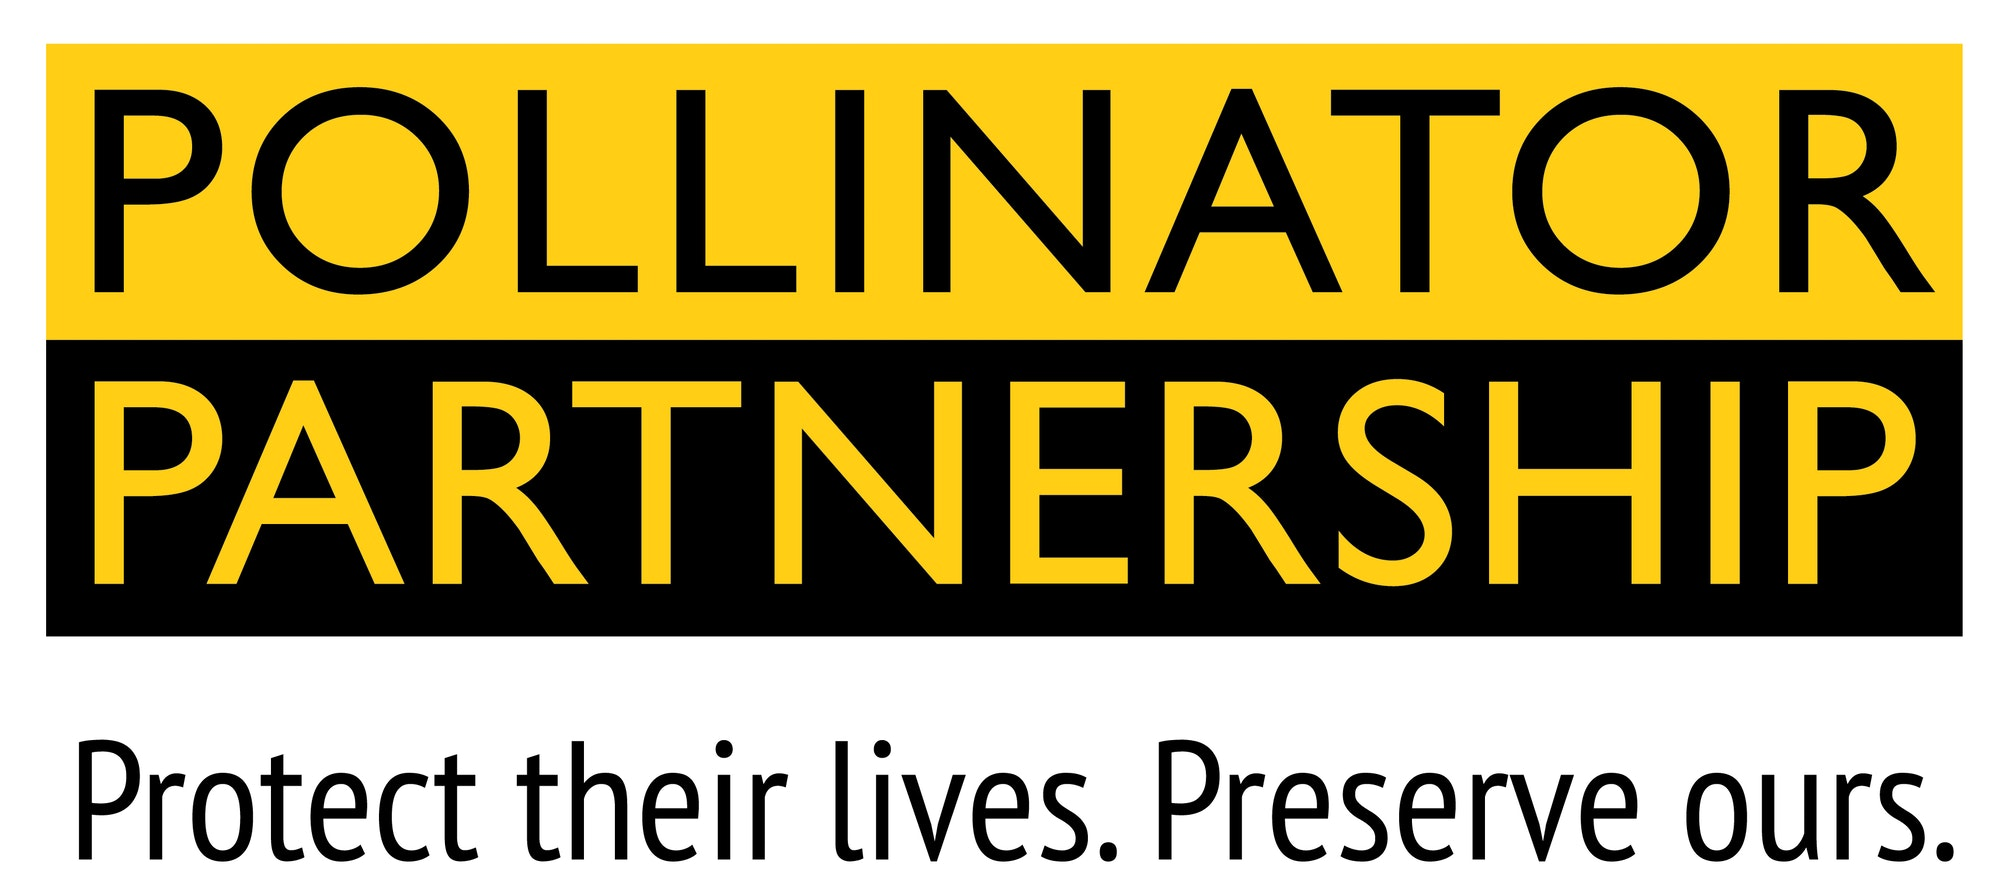 May contain: Pollinator Partnership logo